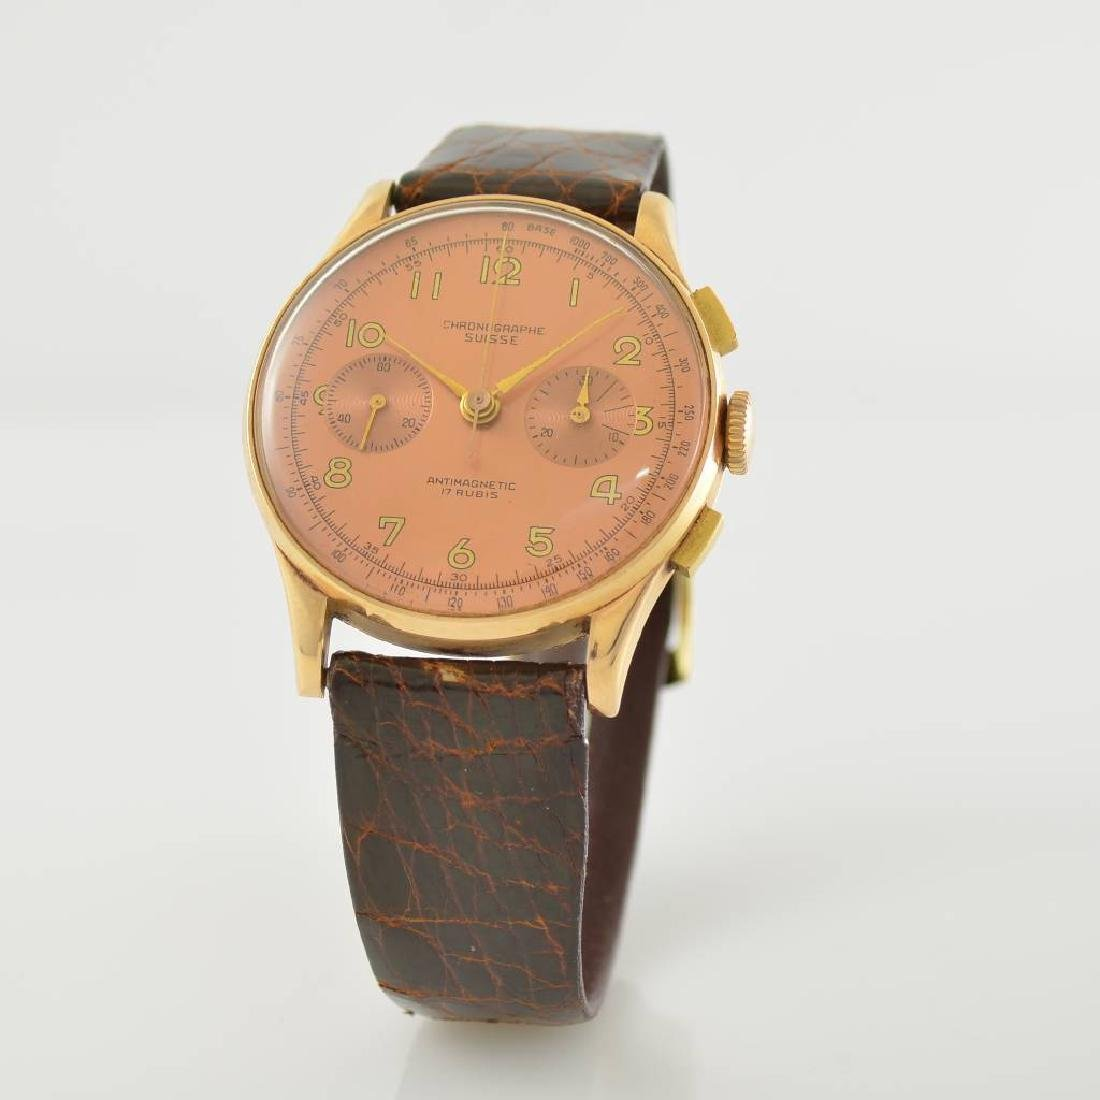 CHRONOGRAPH SUISSE 18k pink gold chronograph - 3